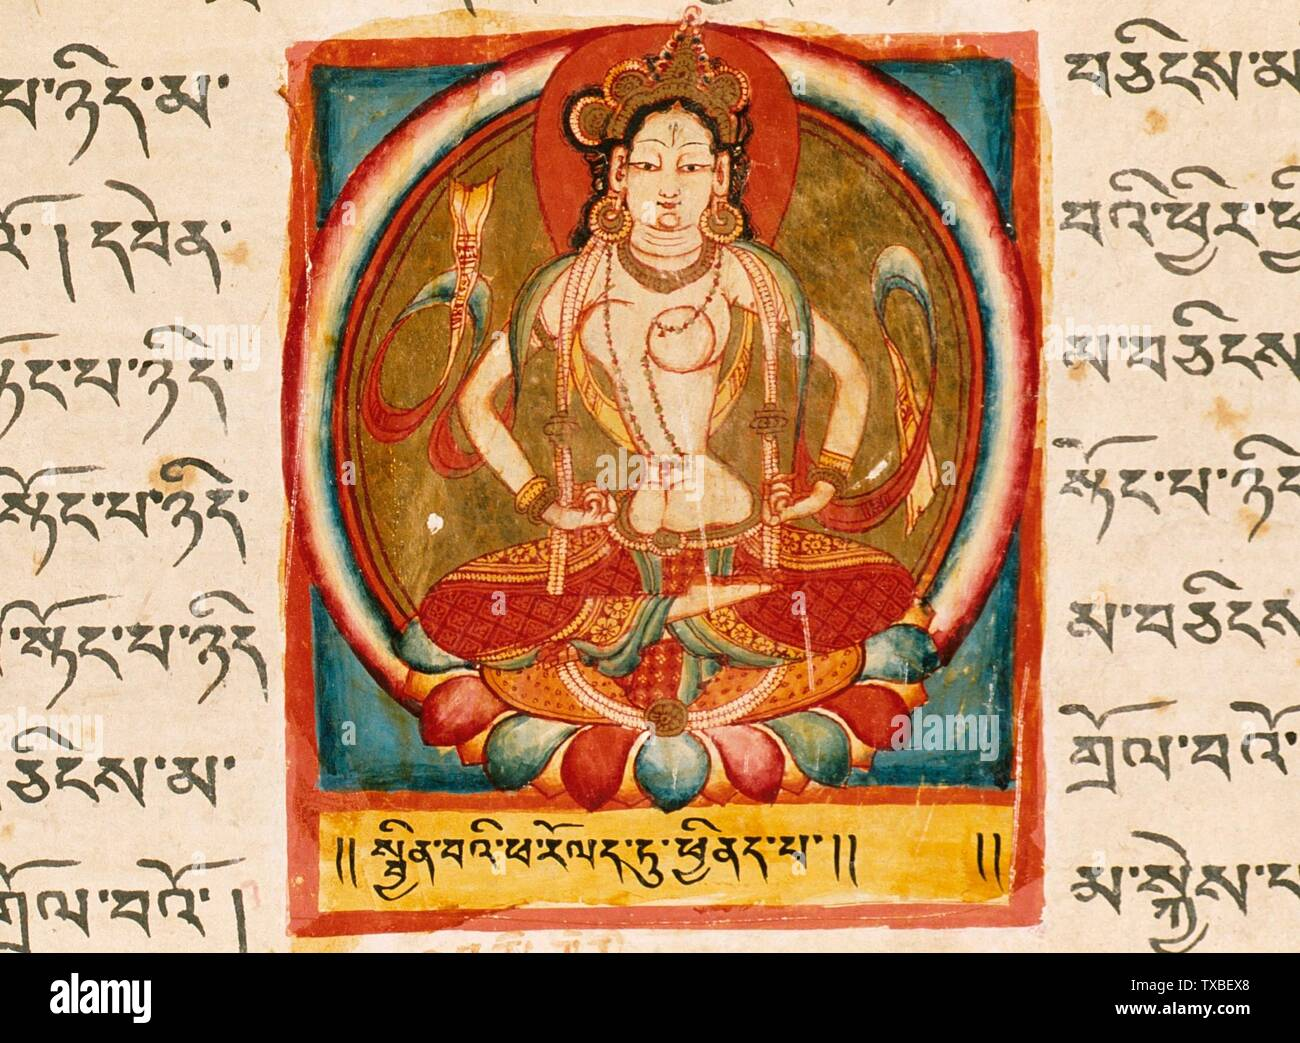 'Perfection of Charity, Folio from a Shatasahasrika Prajnaparamita (The Perfection of Wisdom in 100,000 Verses); English:  Western Tibet, Maryul district, Tholing Monastery, 11th century Manuscripts Ink, opaque watercolor, and gold on paper From the Nasli and Alice Heeramaneck Collection, purchased with funds provided by the Jane and Justin Dart Foundation (M.81.90.10) South and Southeast Asian Art; 11th century date QS:P571,+1050-00-00T00:00:00Z/7; ' - Stock Image